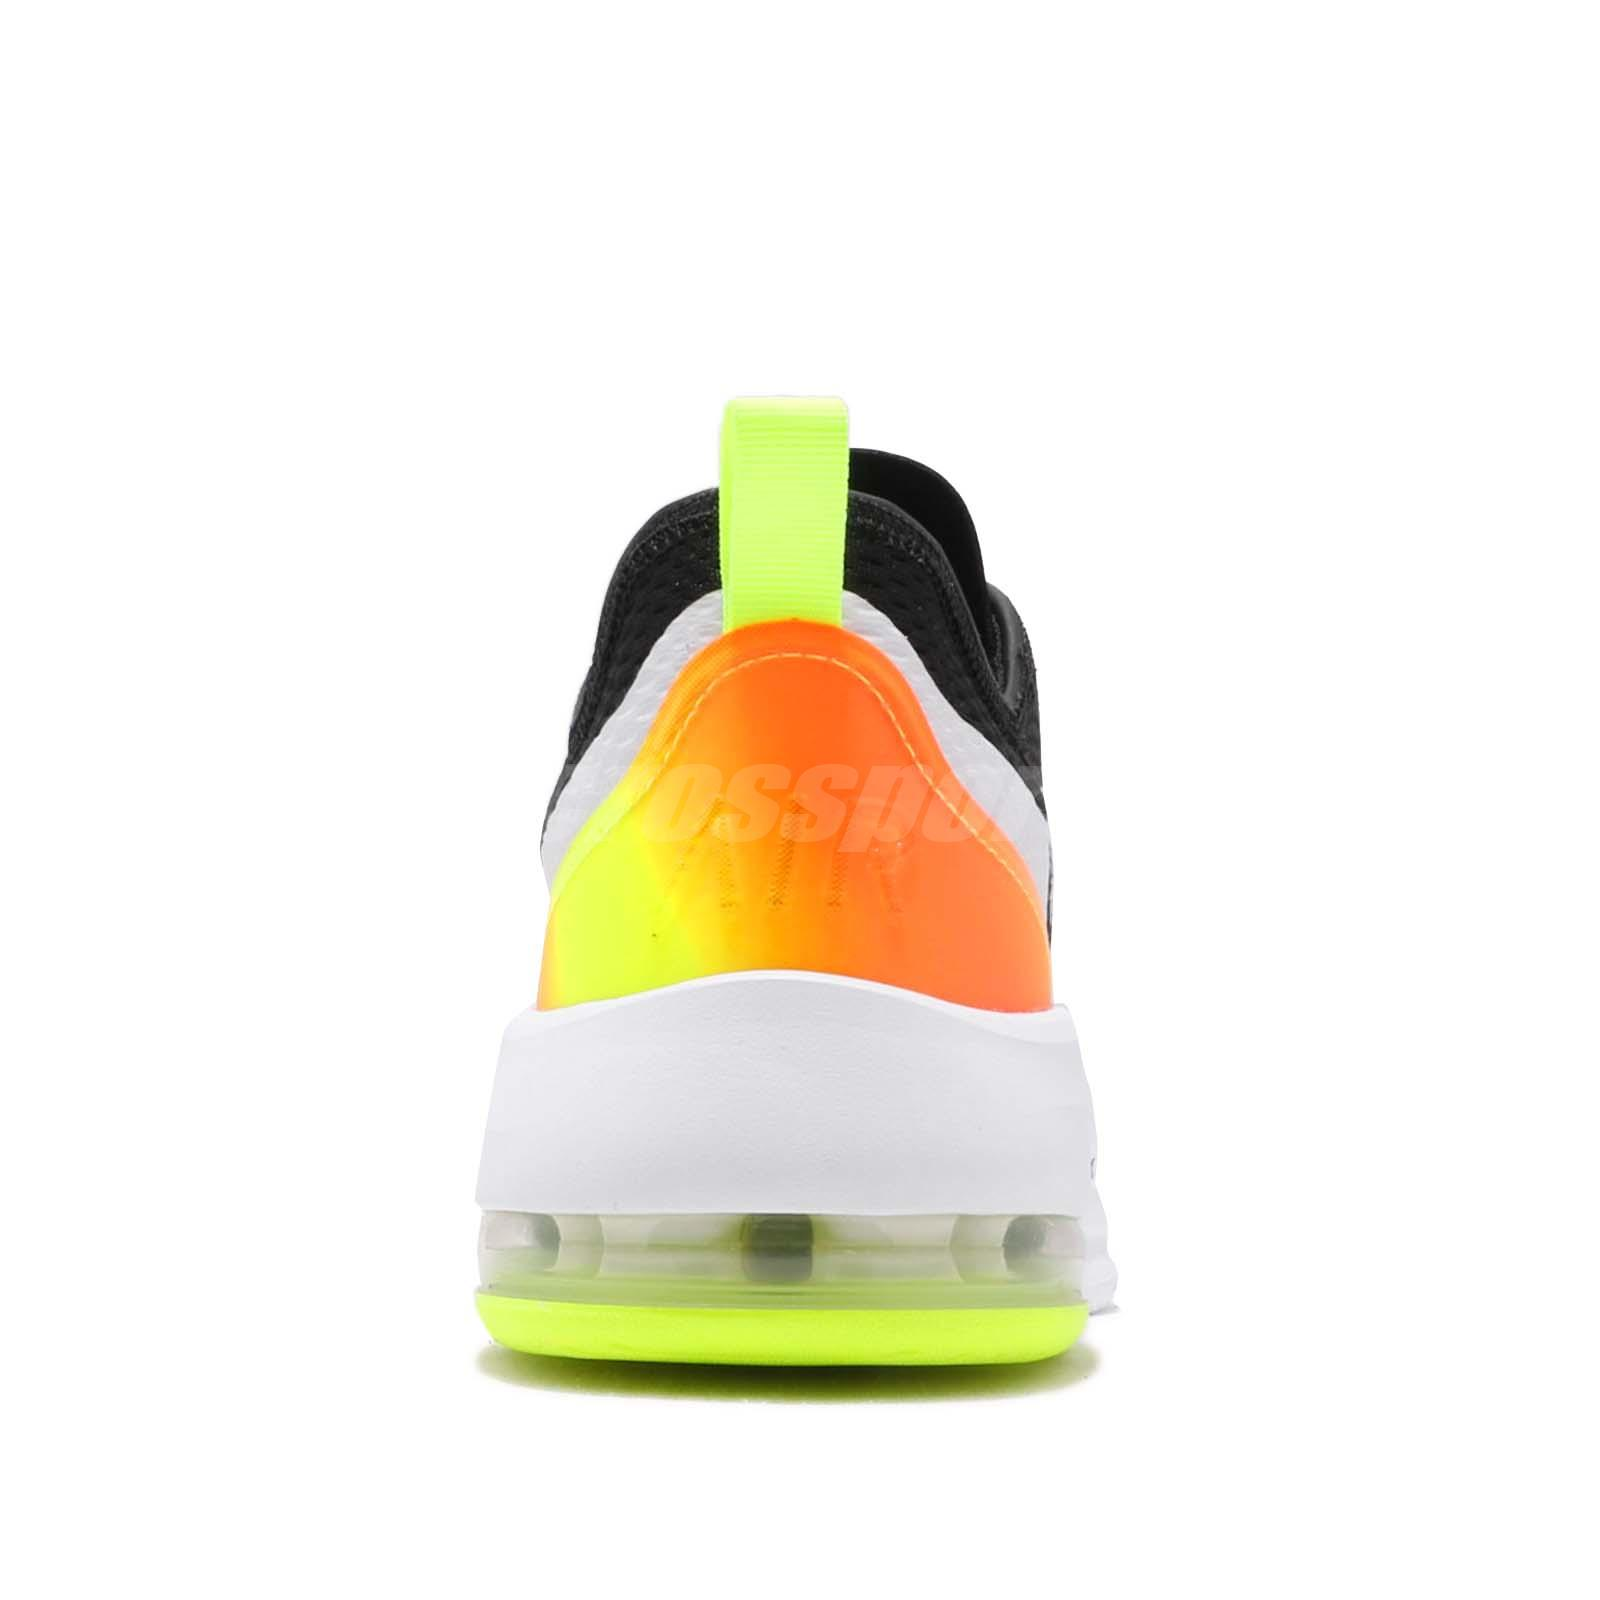 Details about Nike Air Max Motion 2 Black Volt White Men Running Shoes Sneakers AO0266 007